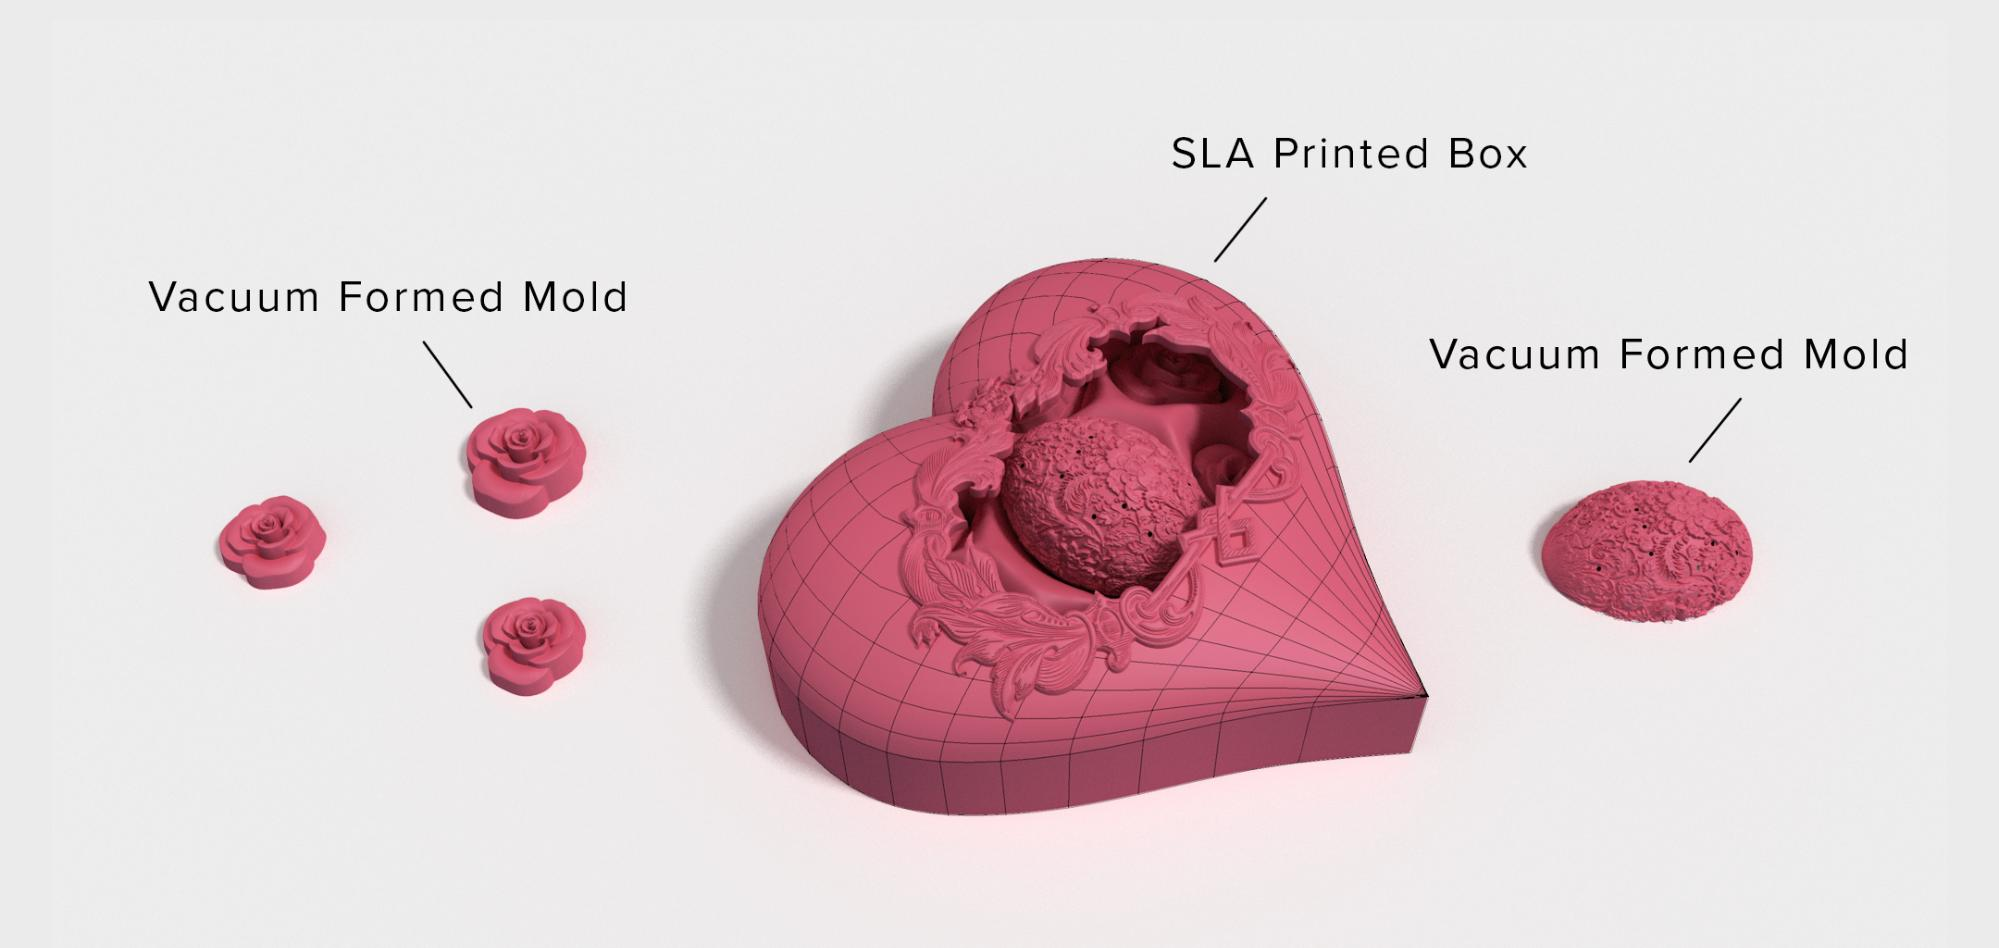 With 3D printing and vacuum forming, you can make your own intricate chocolates.